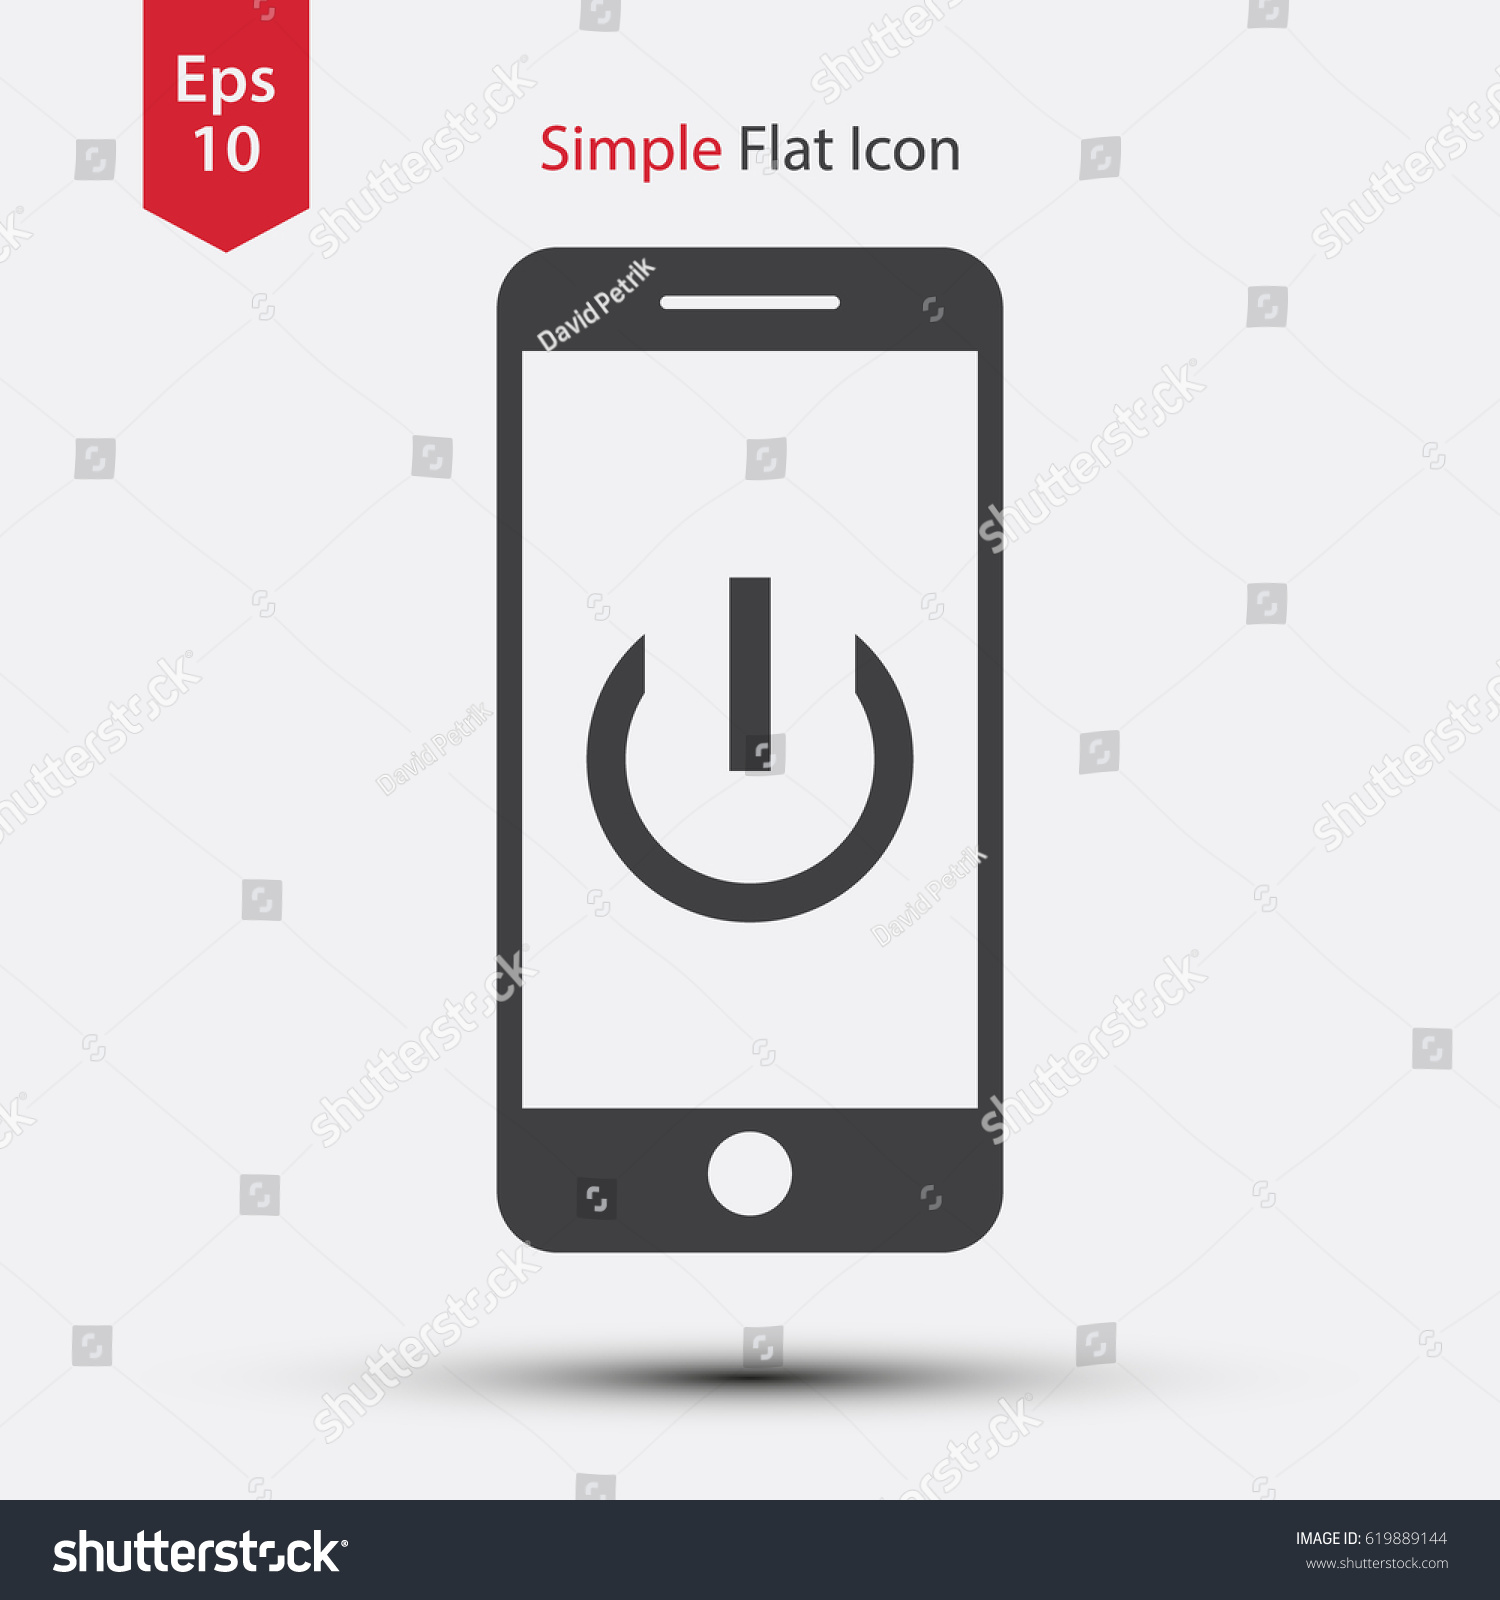 Realistic Modern Phone Flat Icon Simple Stock Vector 619889144 ...